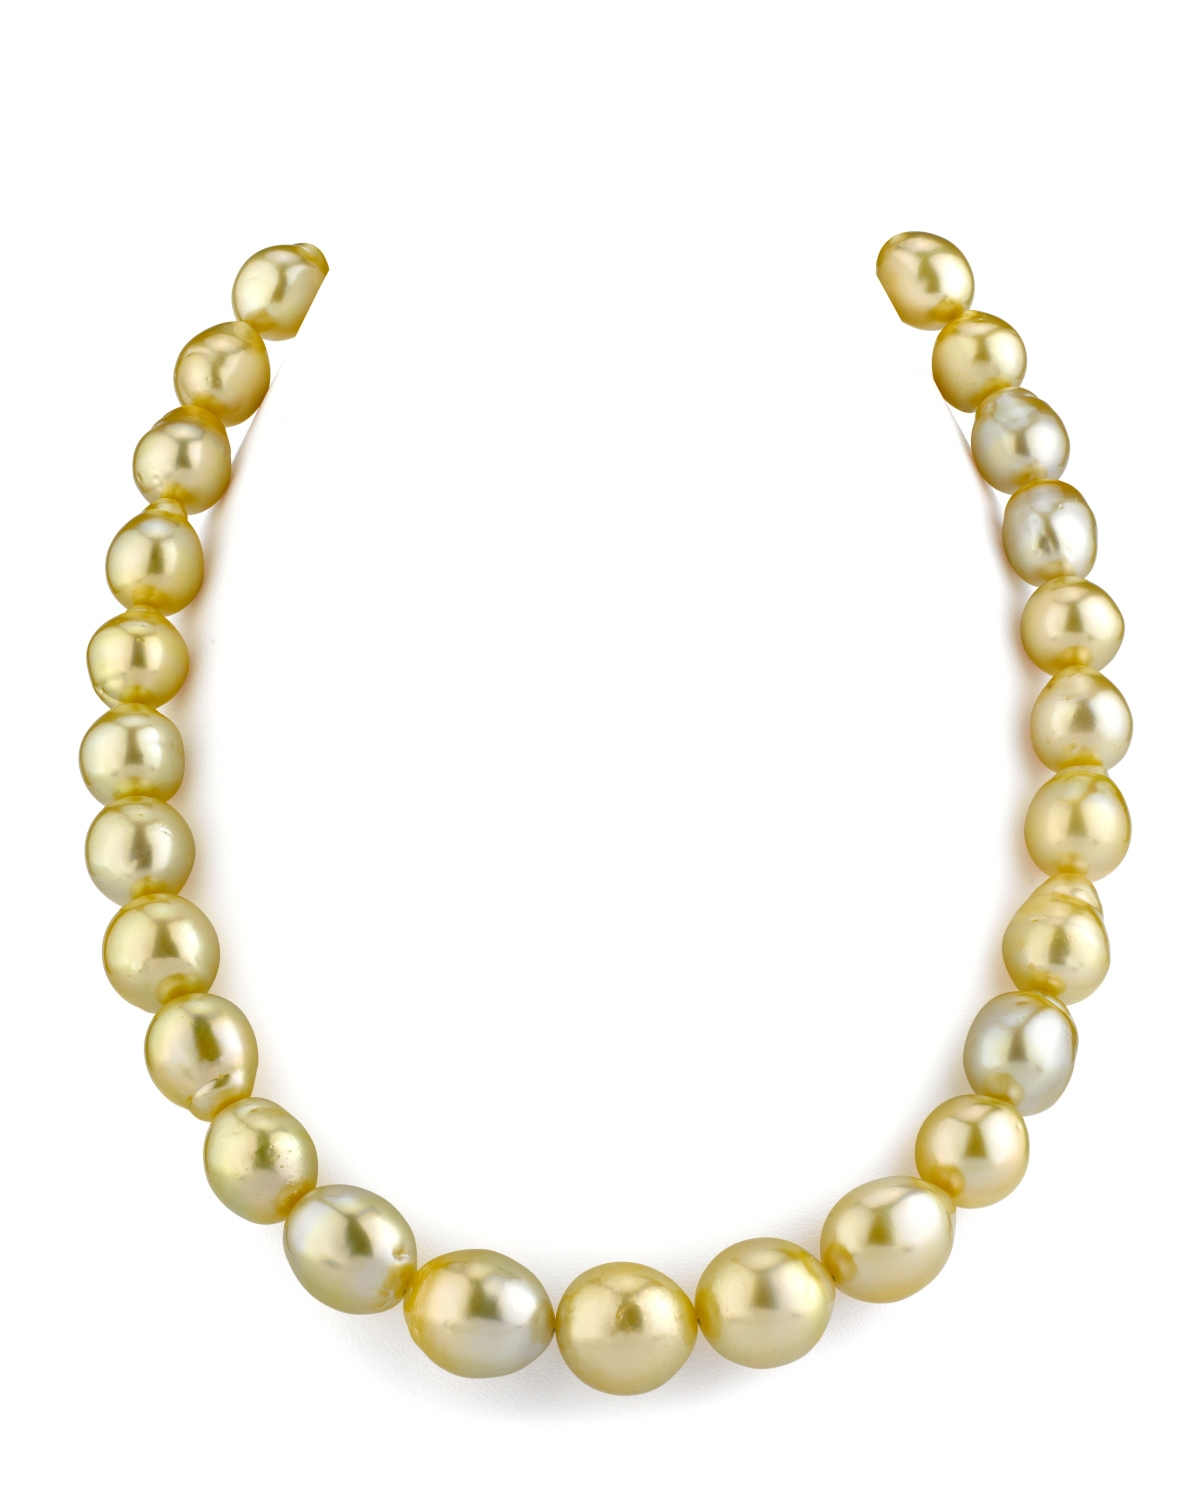 11-14mm Drop-Shape Golden South Sea Pearl Necklace